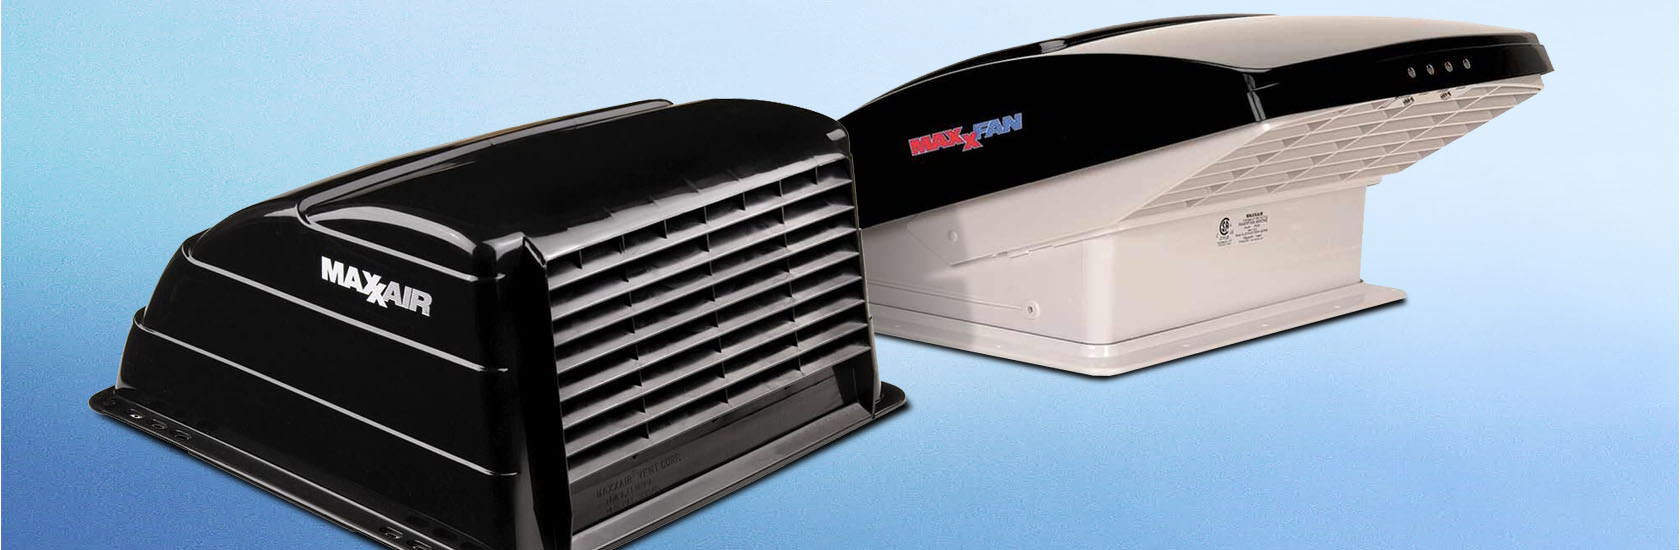 Save Big on RV Roof Vents & Fans